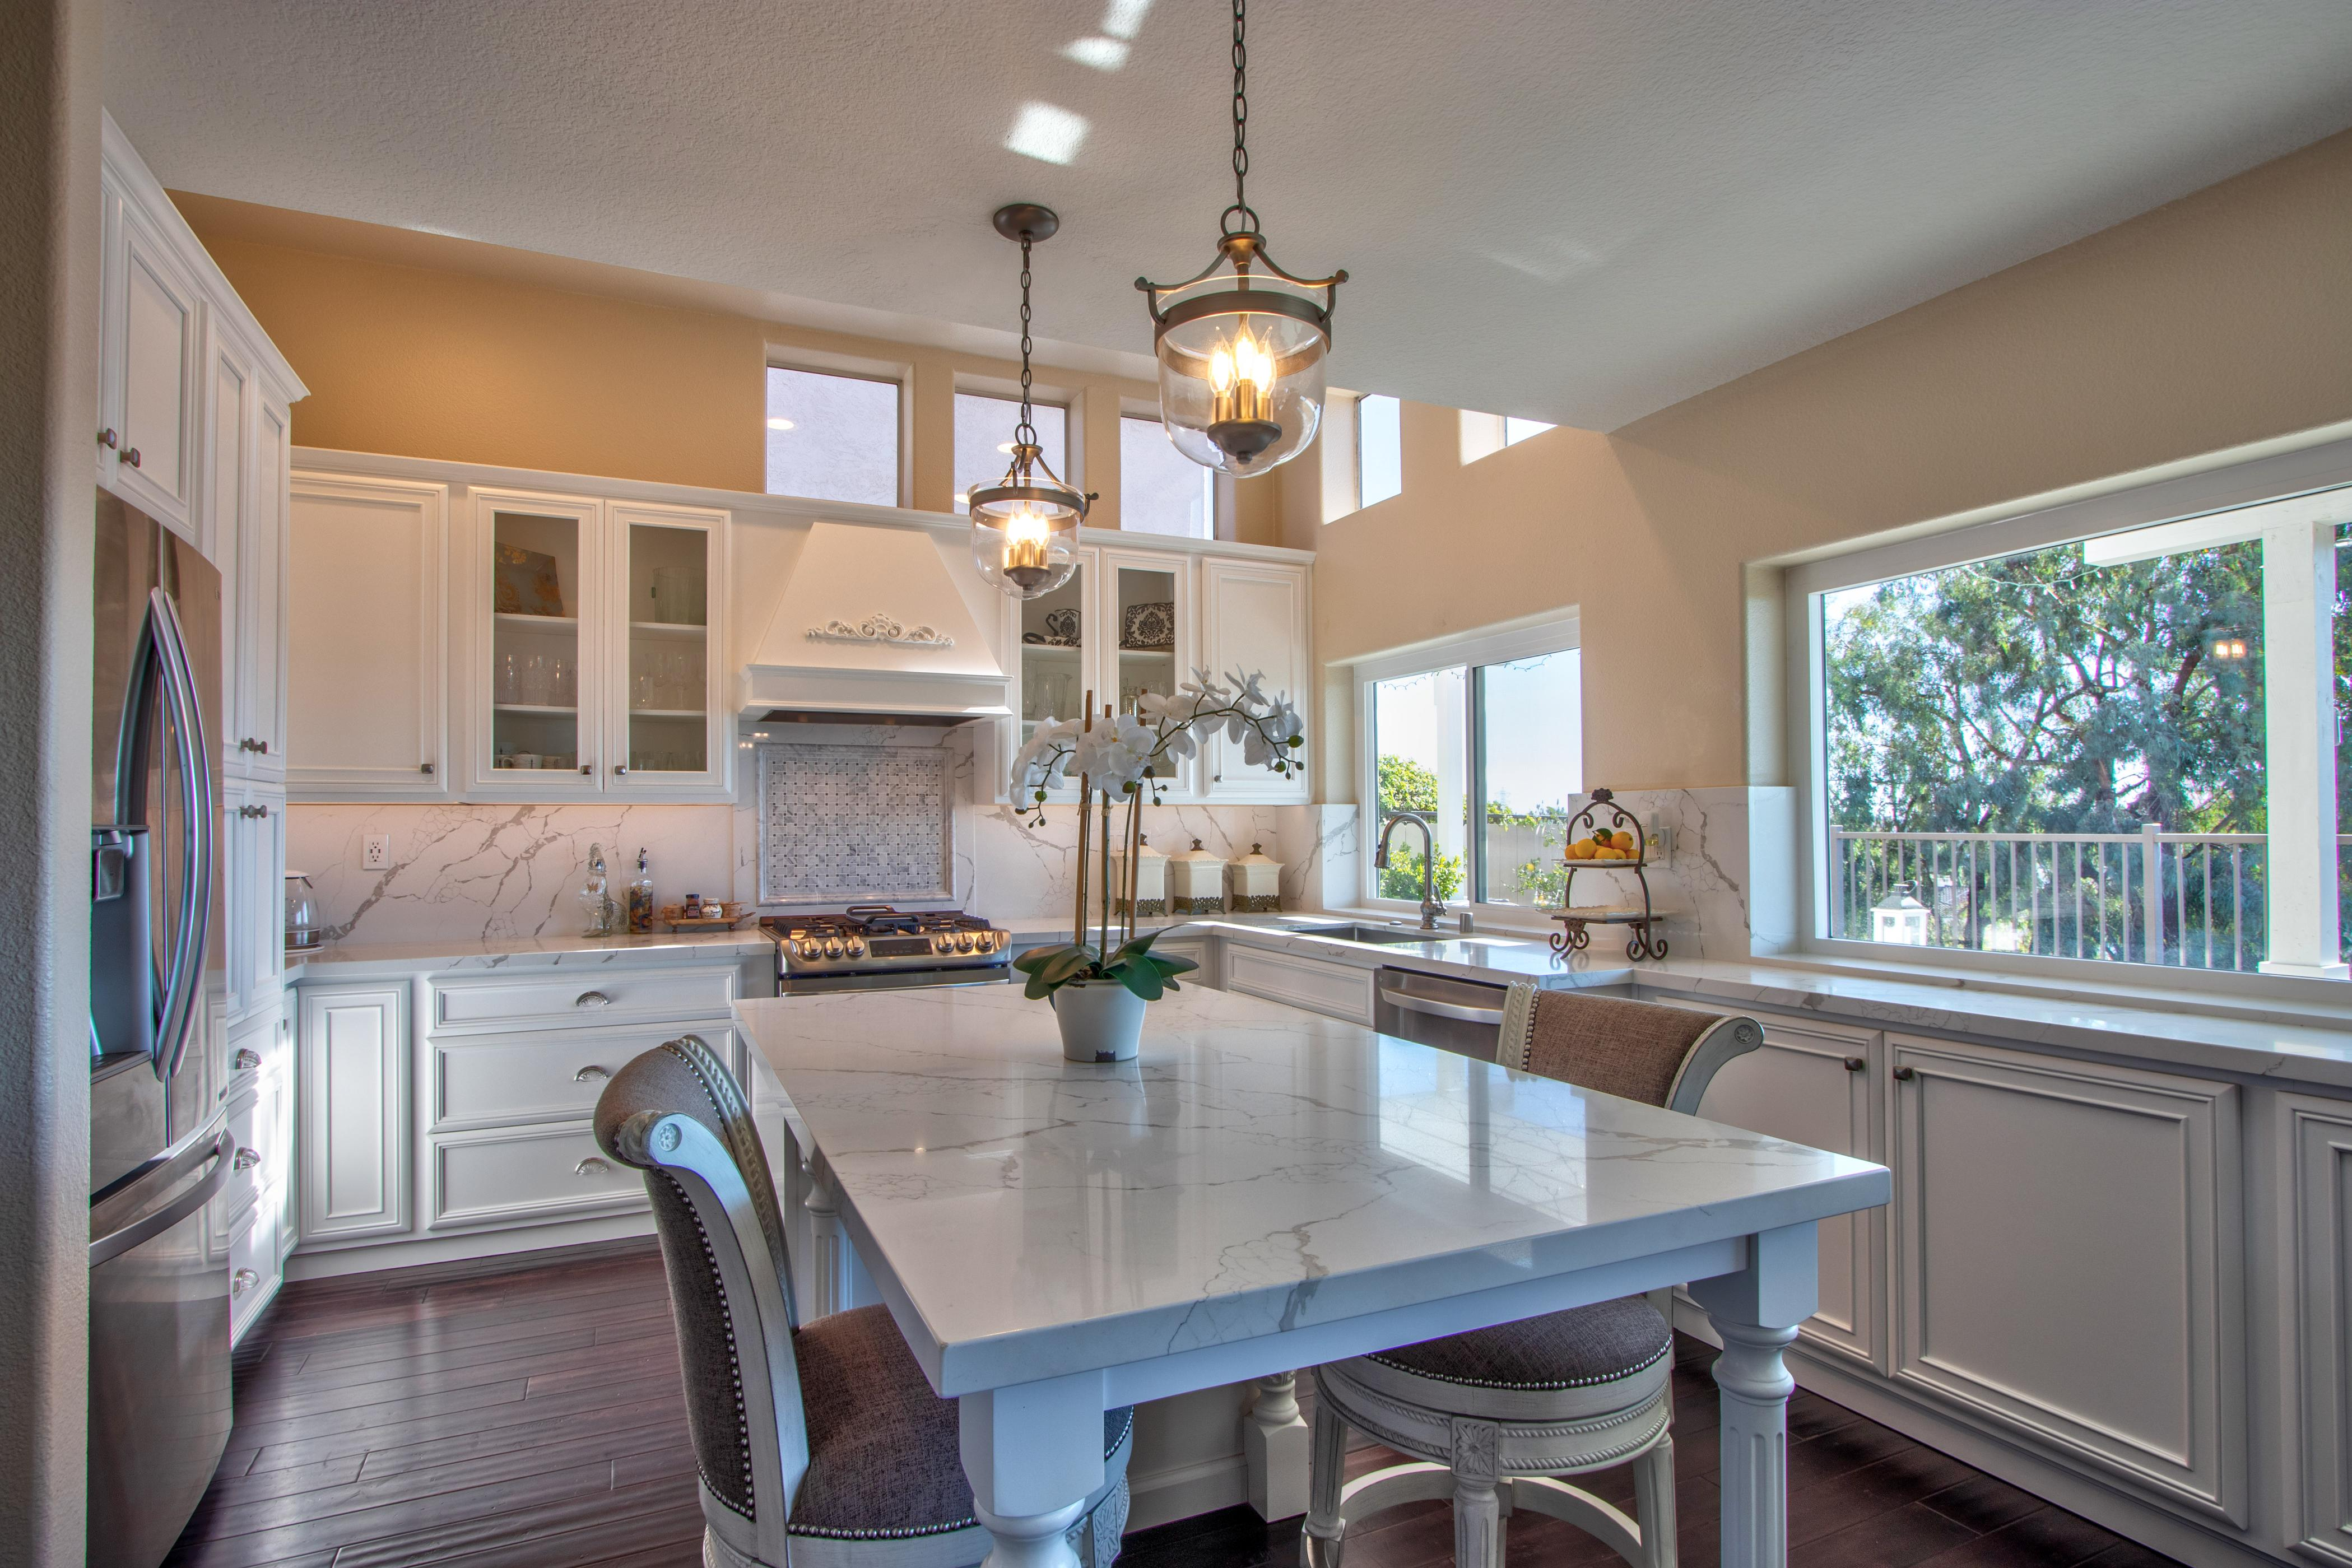 Carlsbad-Cabinet-Refacing-Project-13